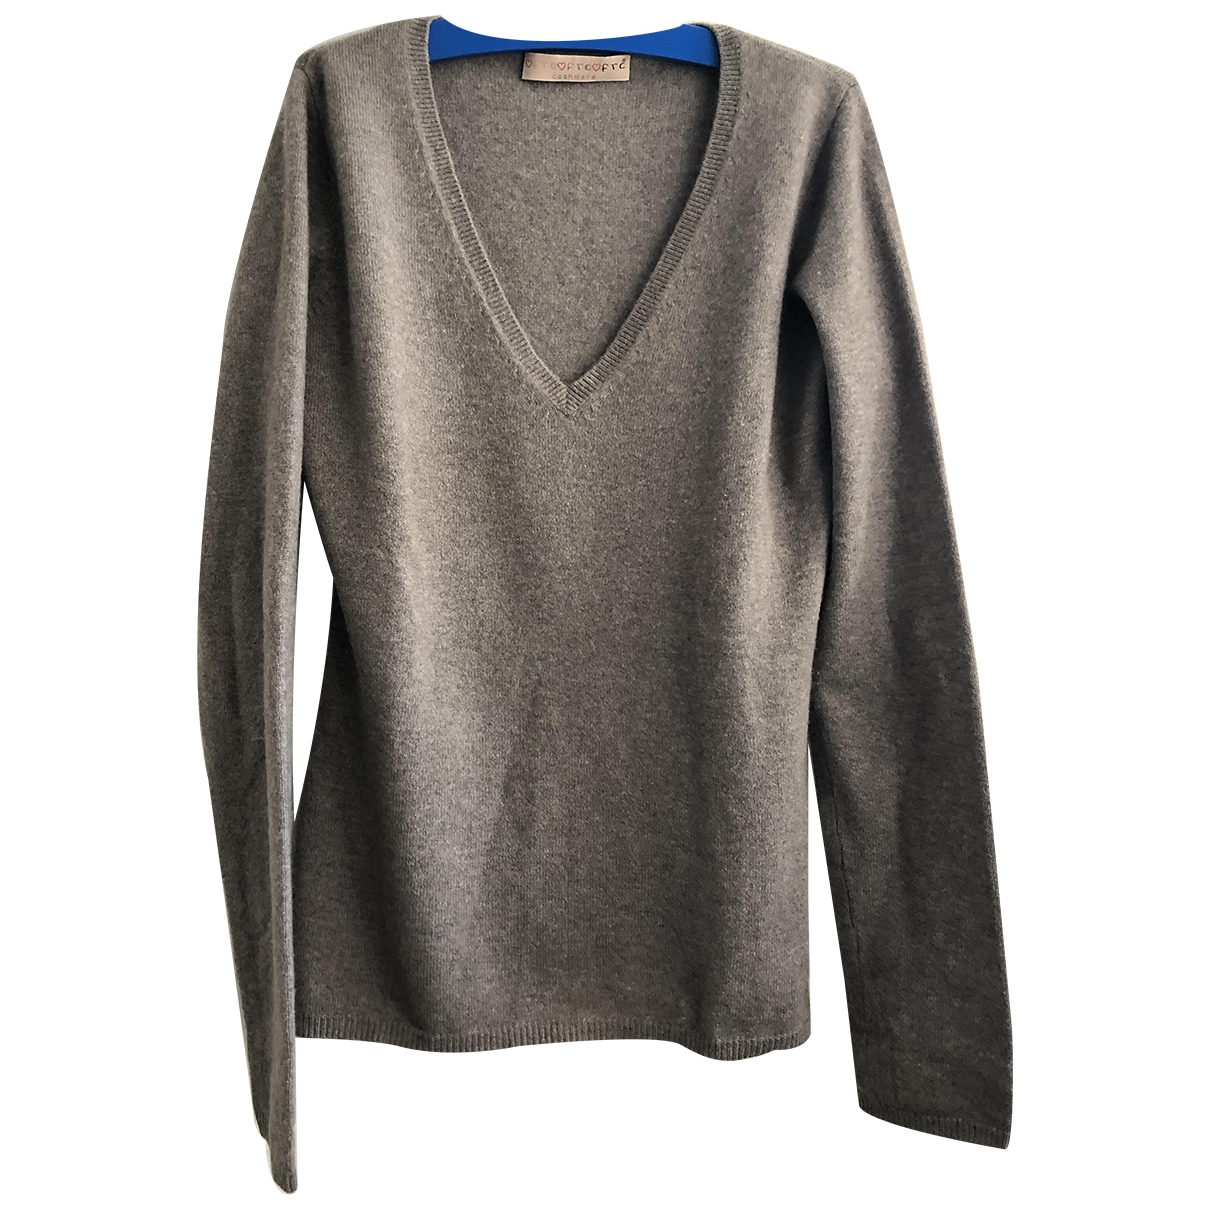 Ftc Cashmere \N Brown Cashmere Knitwear for Women XS International